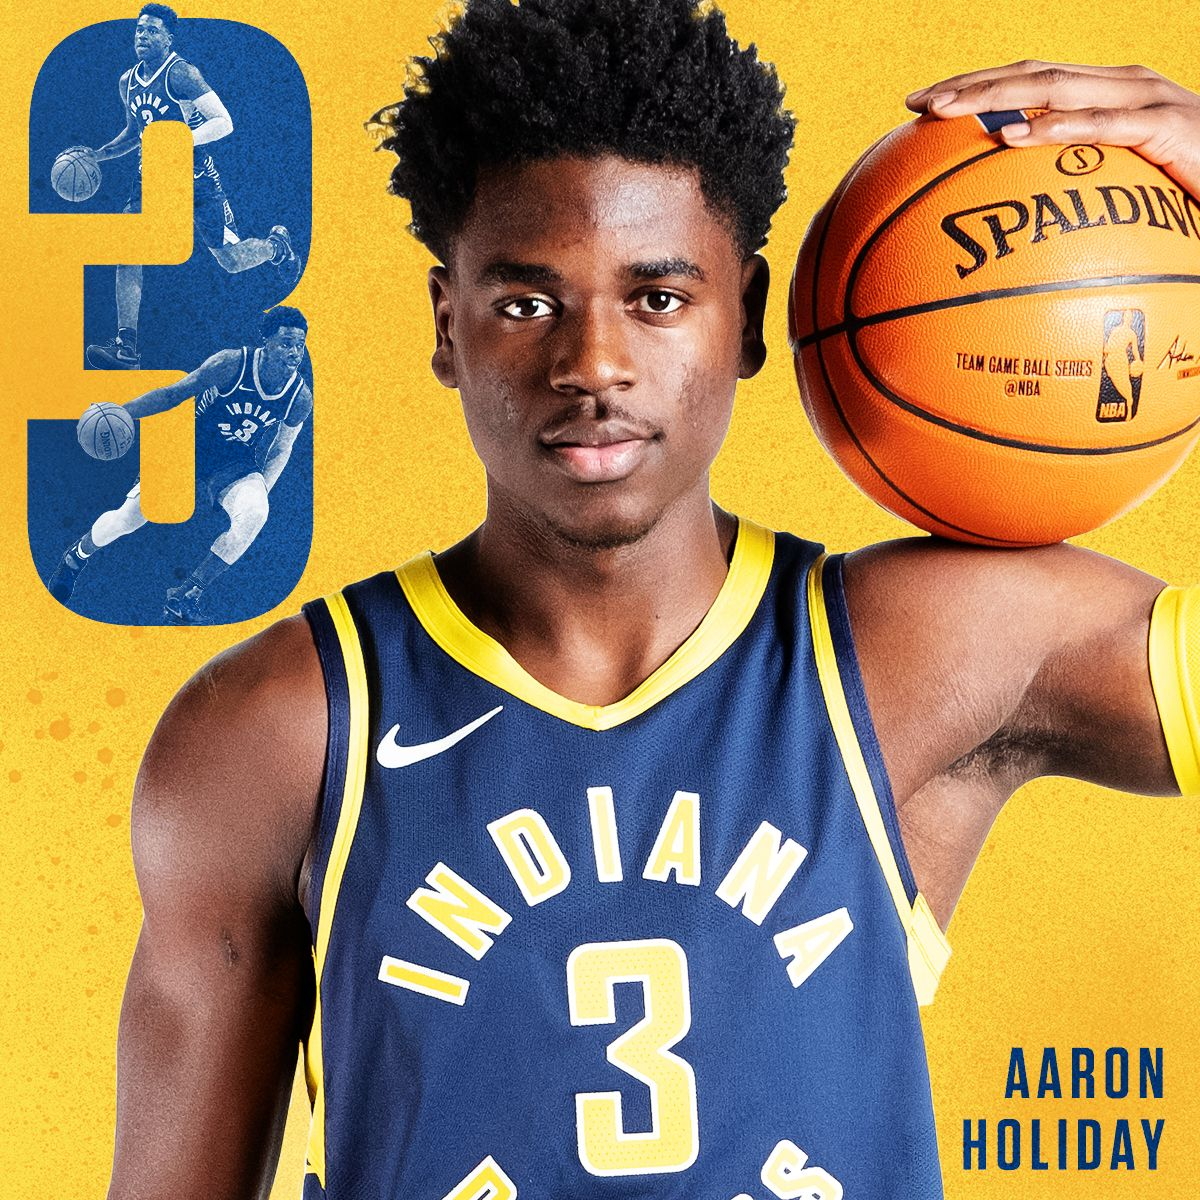 3️⃣ (aka @The_4th_Holiday) days away from Opening Night presented by @kroger! https://t.co/FZ2MuKRlCG